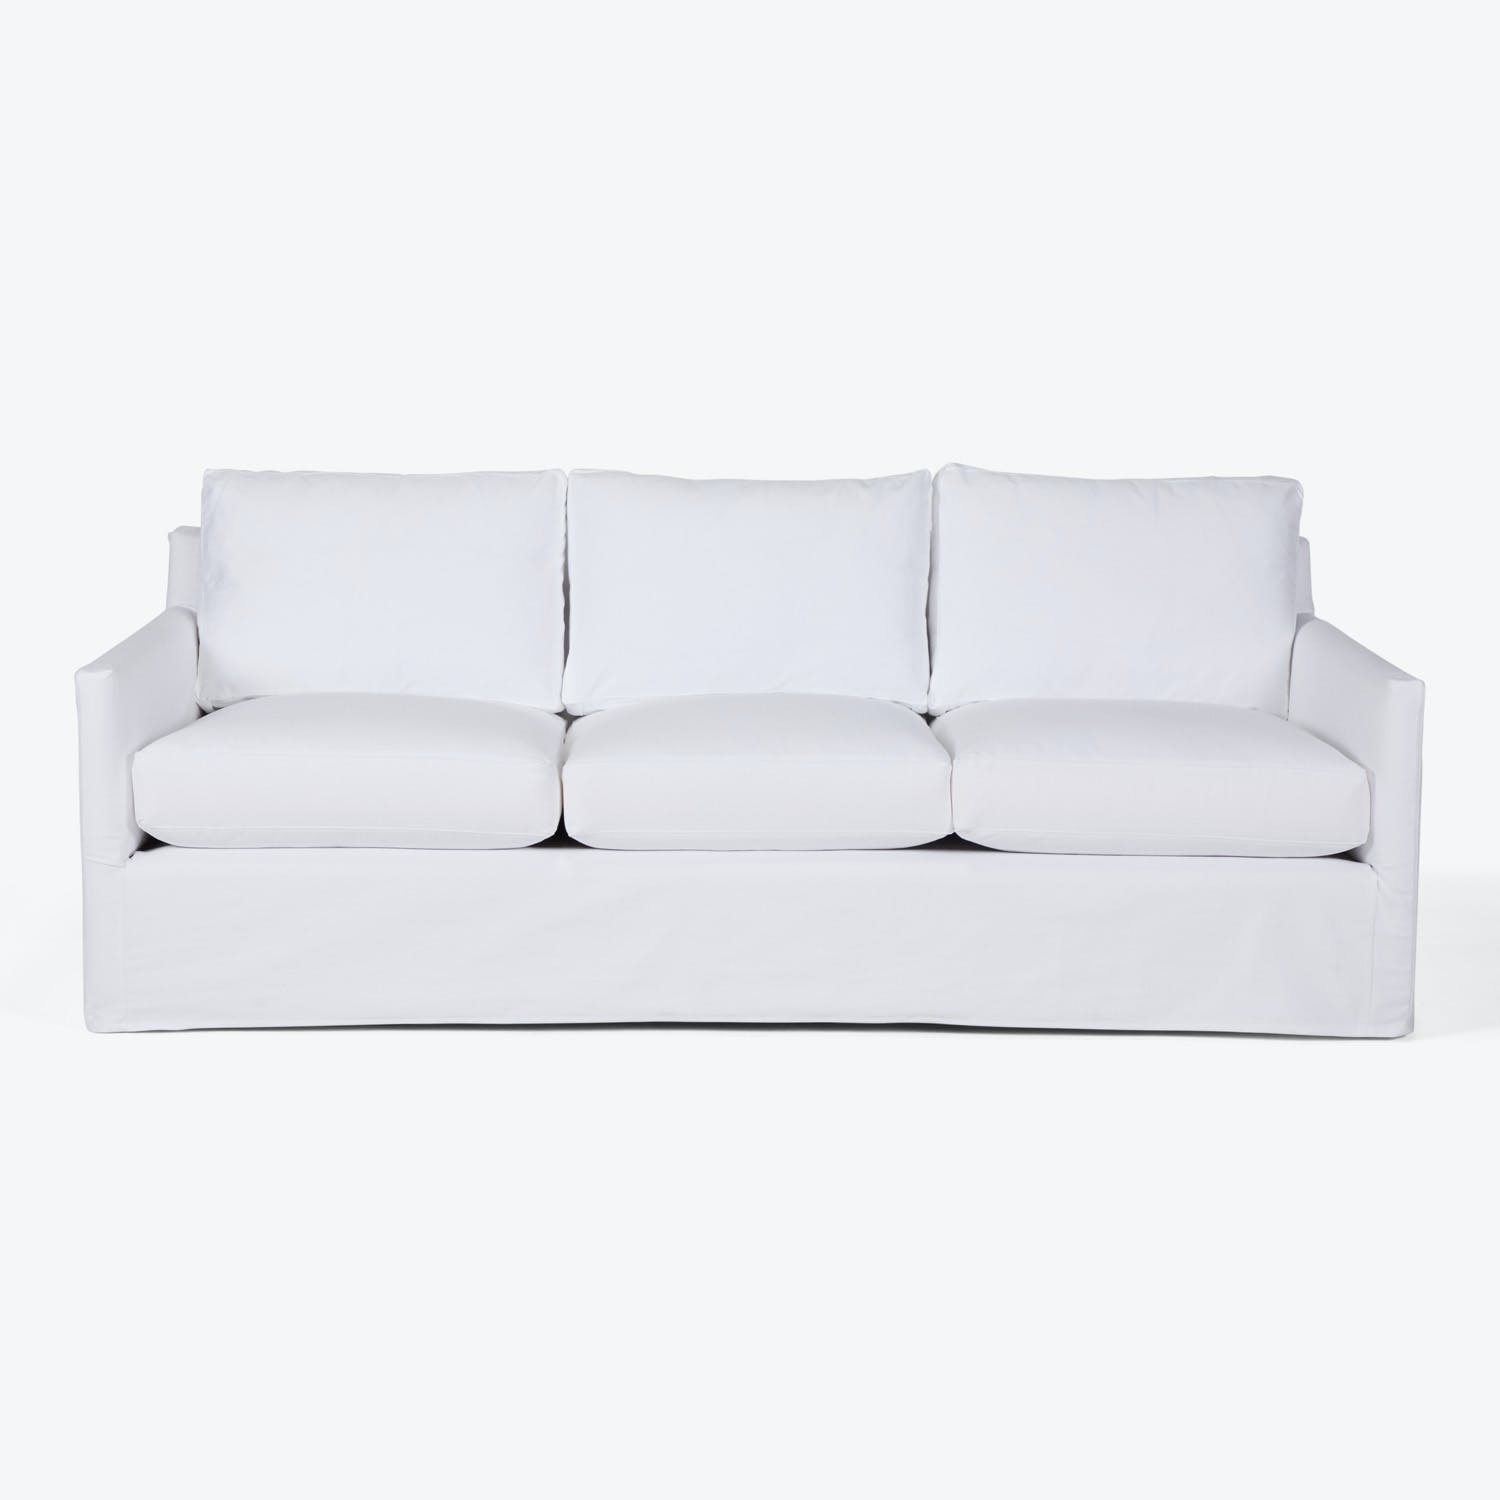 Product Image - Atlantic Slipped Sofa